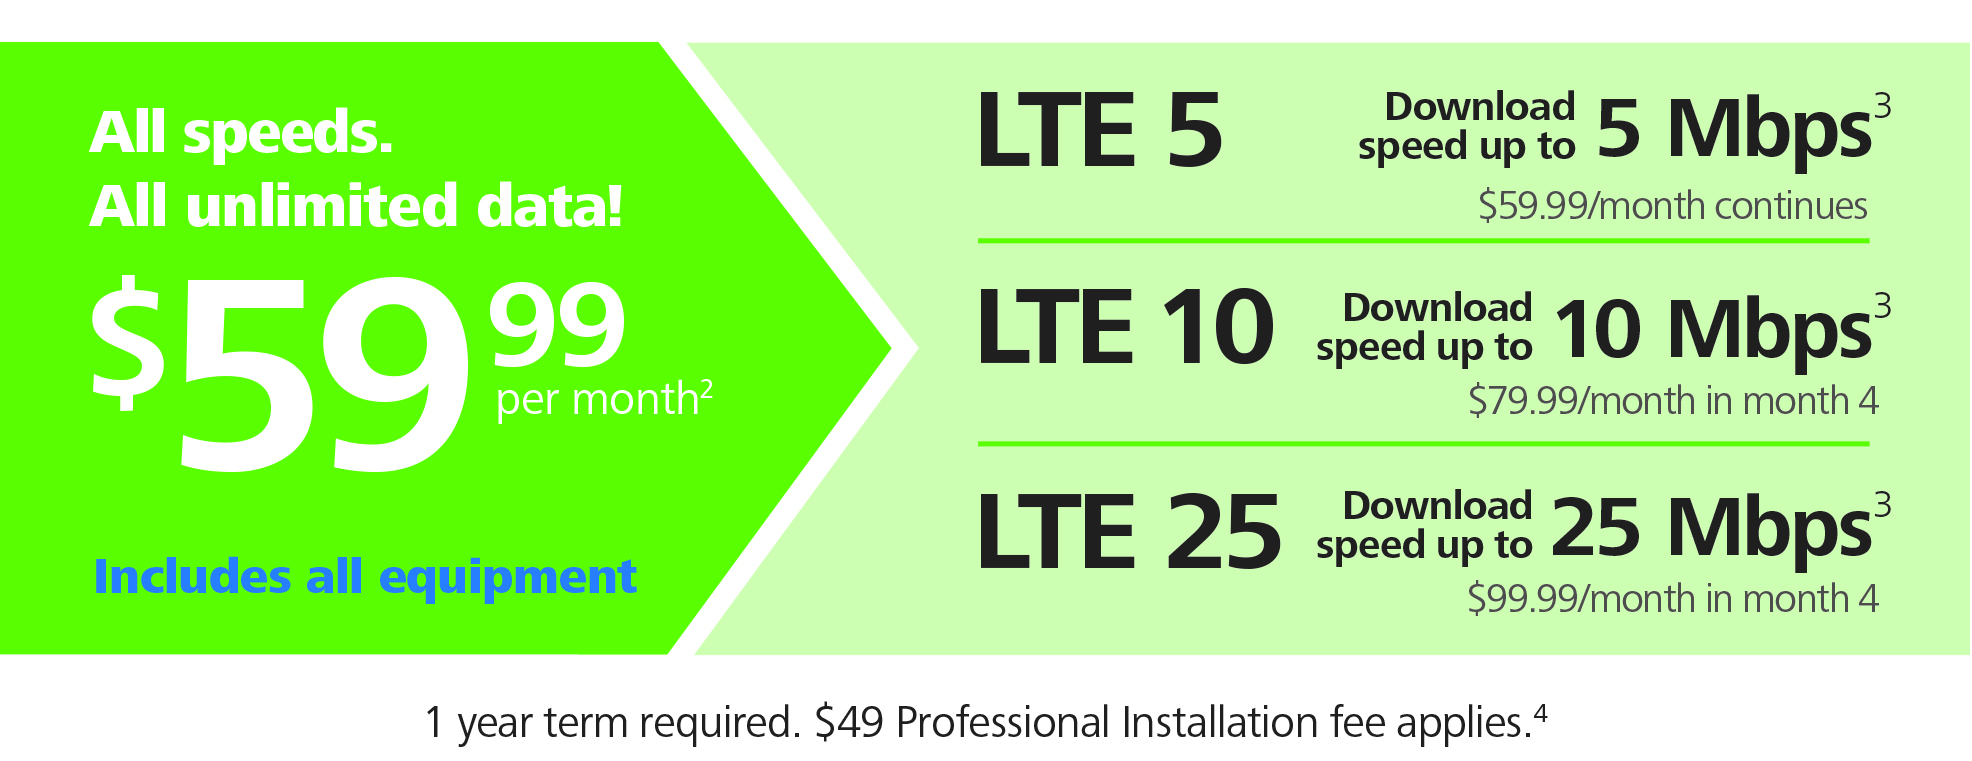 LTE Unlimited $59.99 plans.jpg